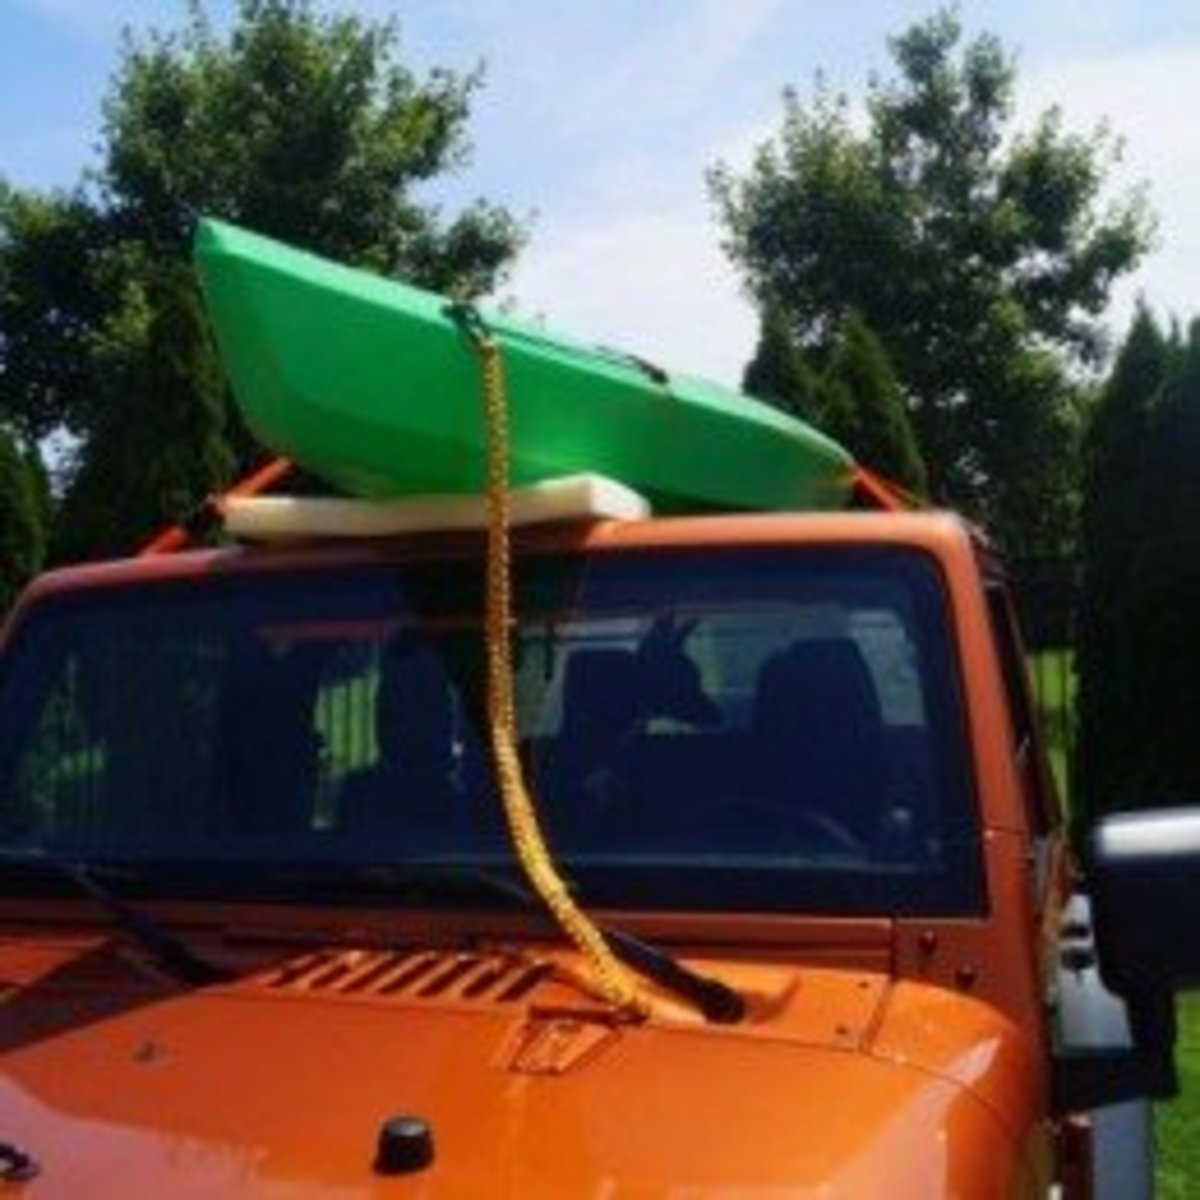 How To Strap A Kayak To A Softtop Jeep For Transport